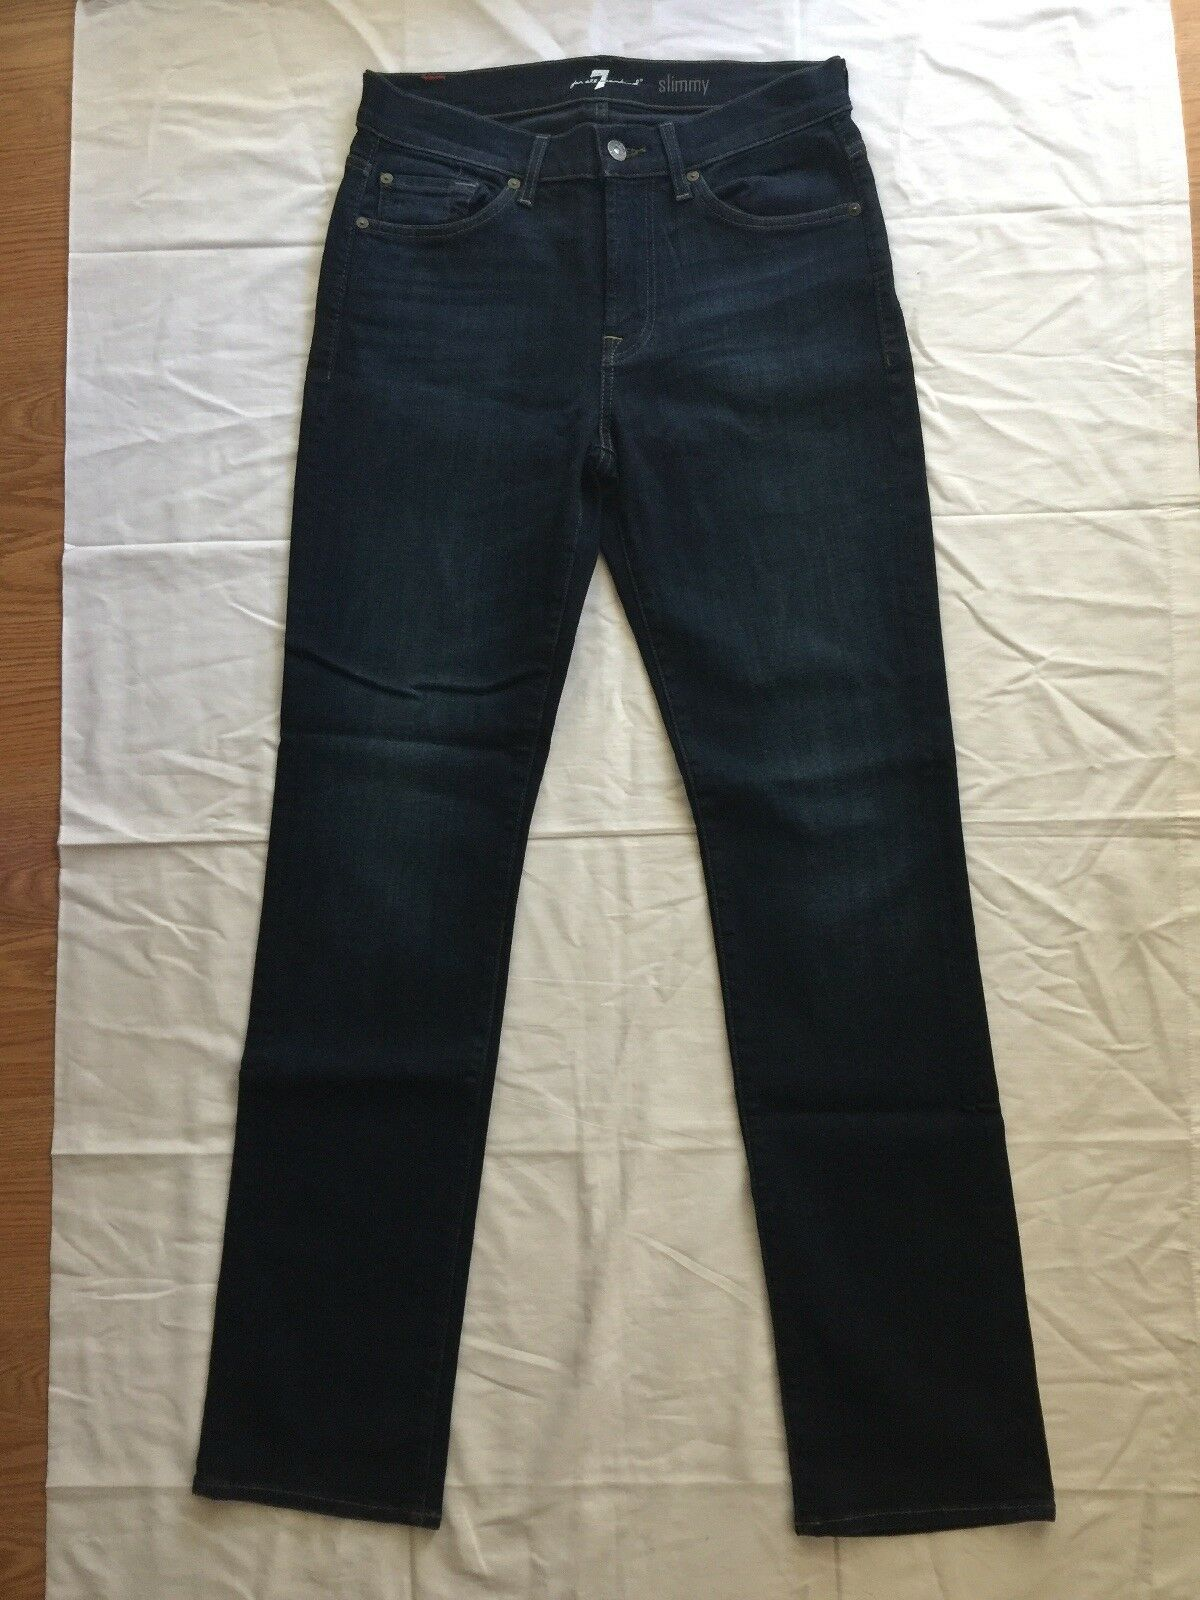 7 For All Mankind Womens Slimmy bluee Stretch Jeans Size 29 NEW